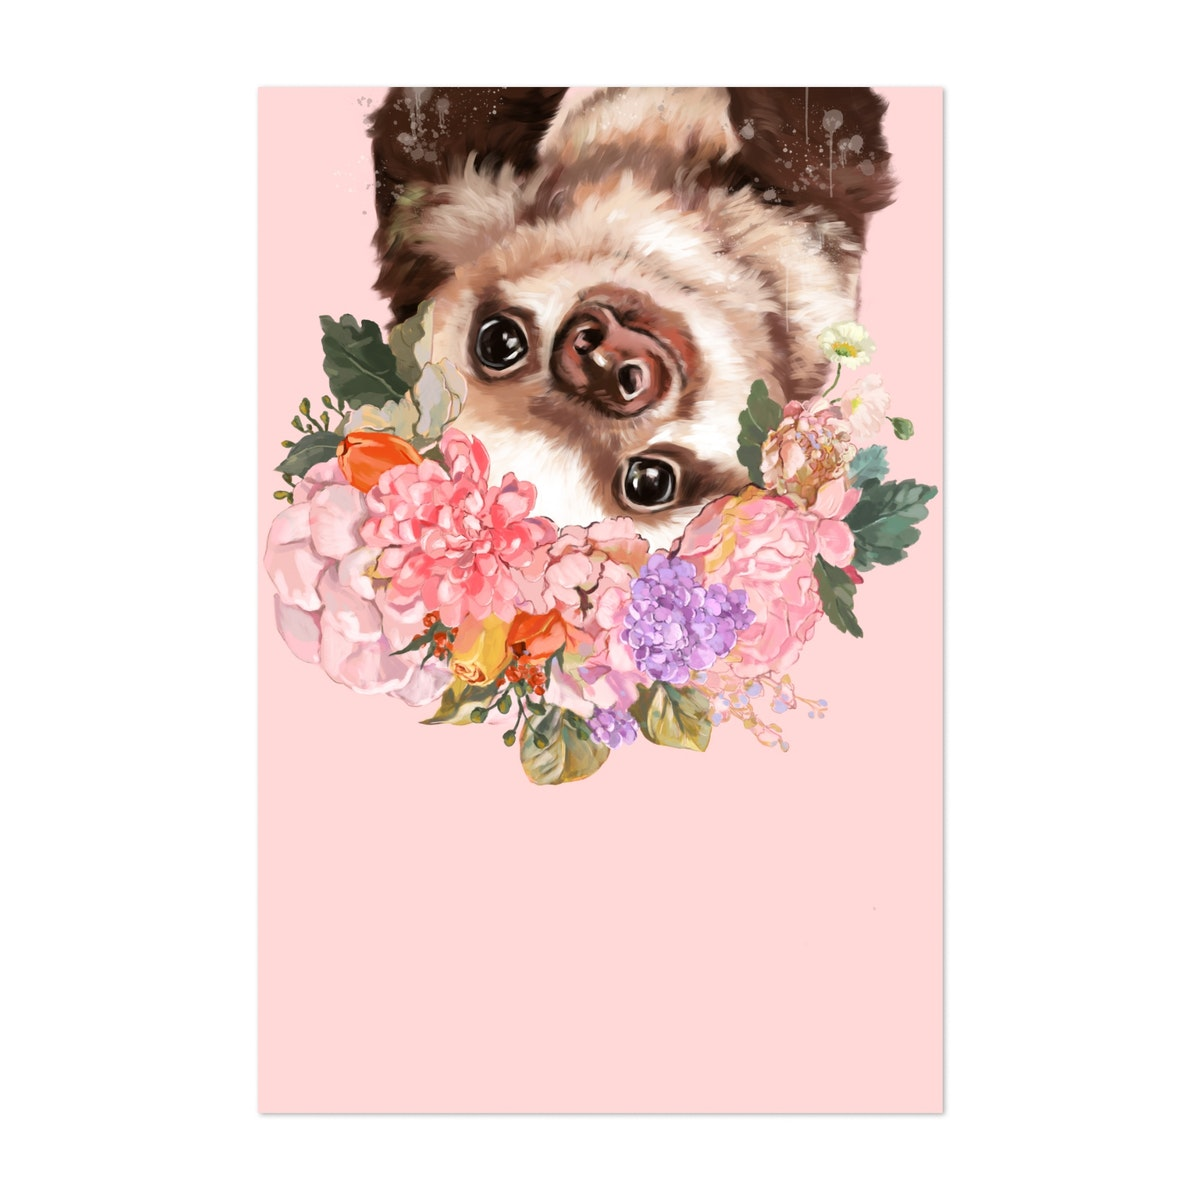 Baby Sloth with Flower Crown